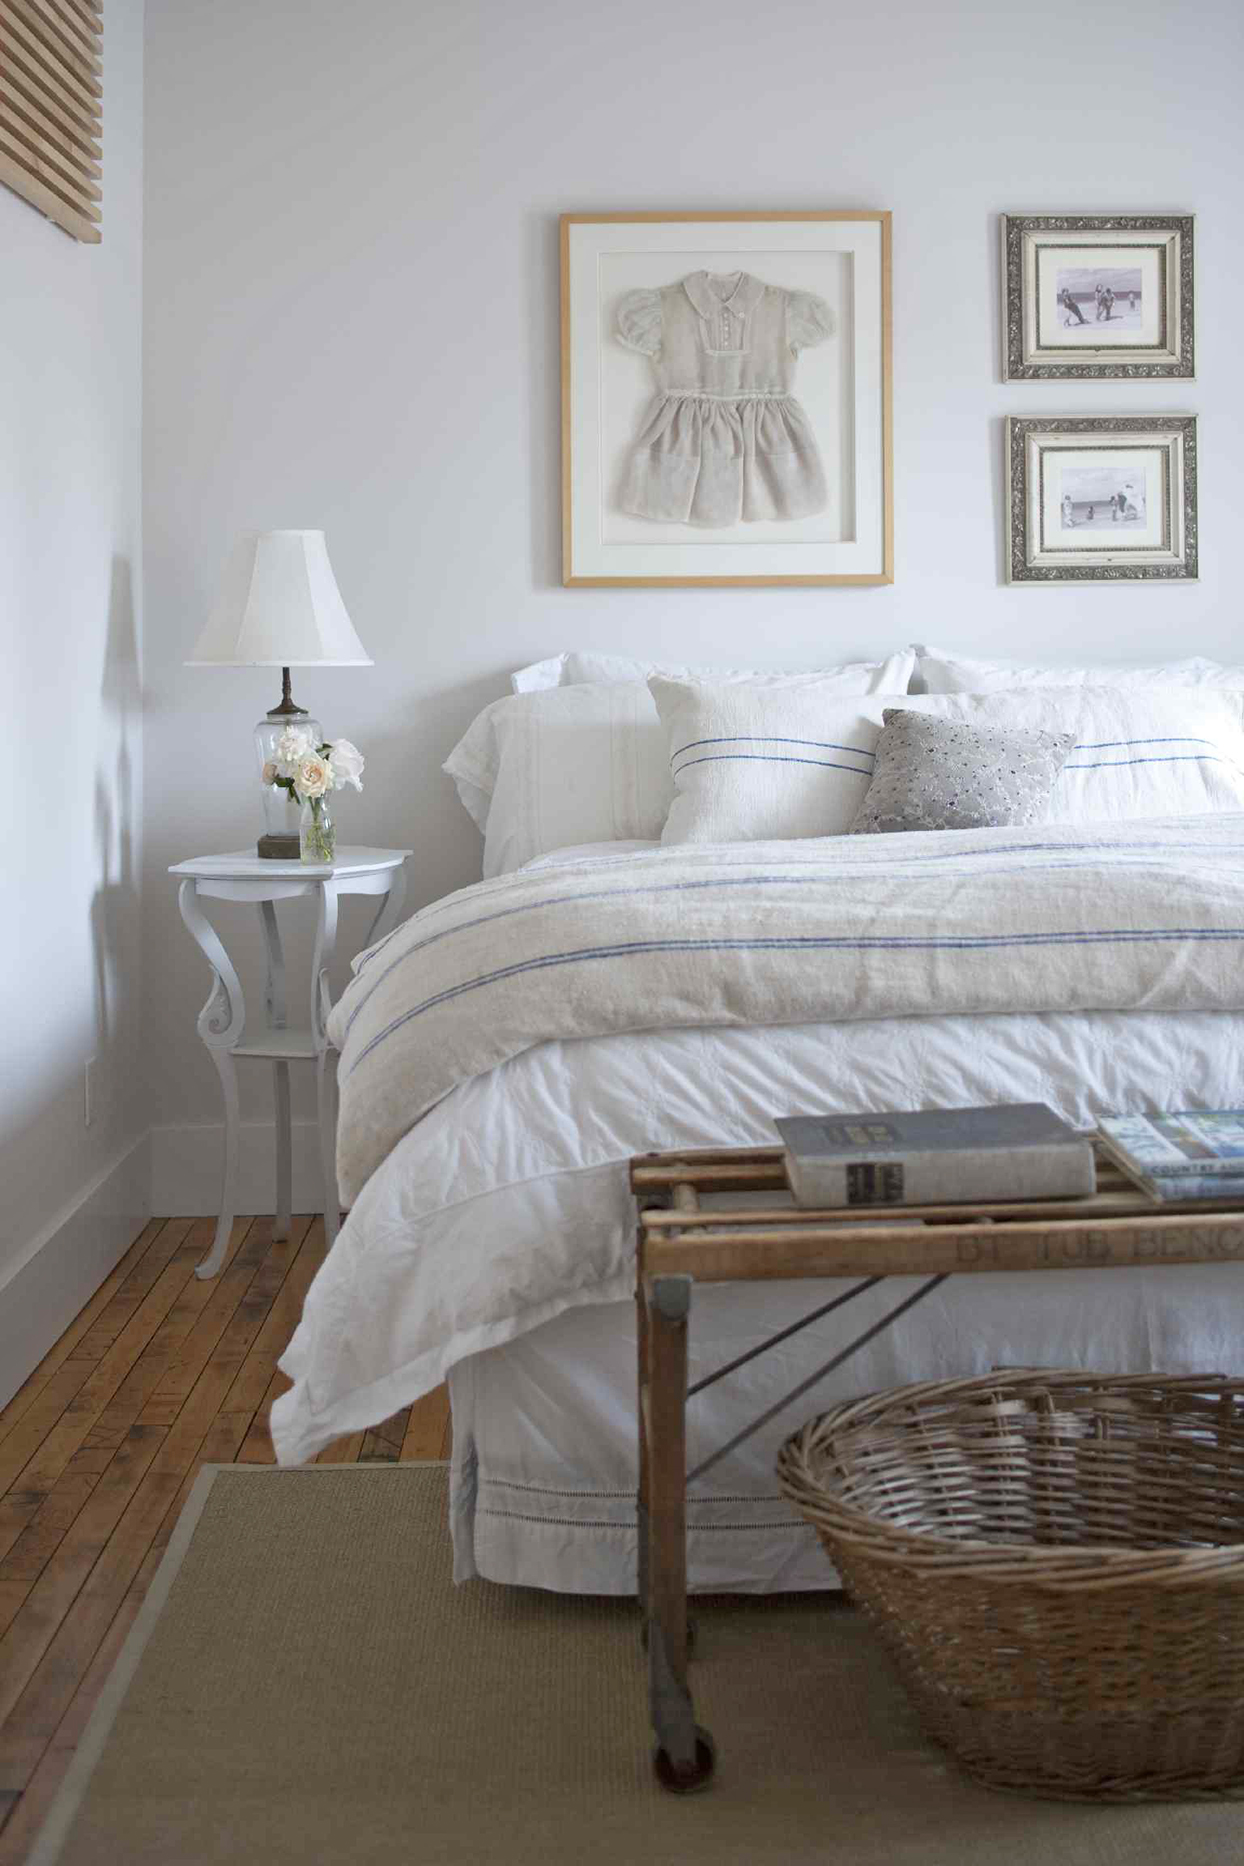 bedroom with white and blue linens